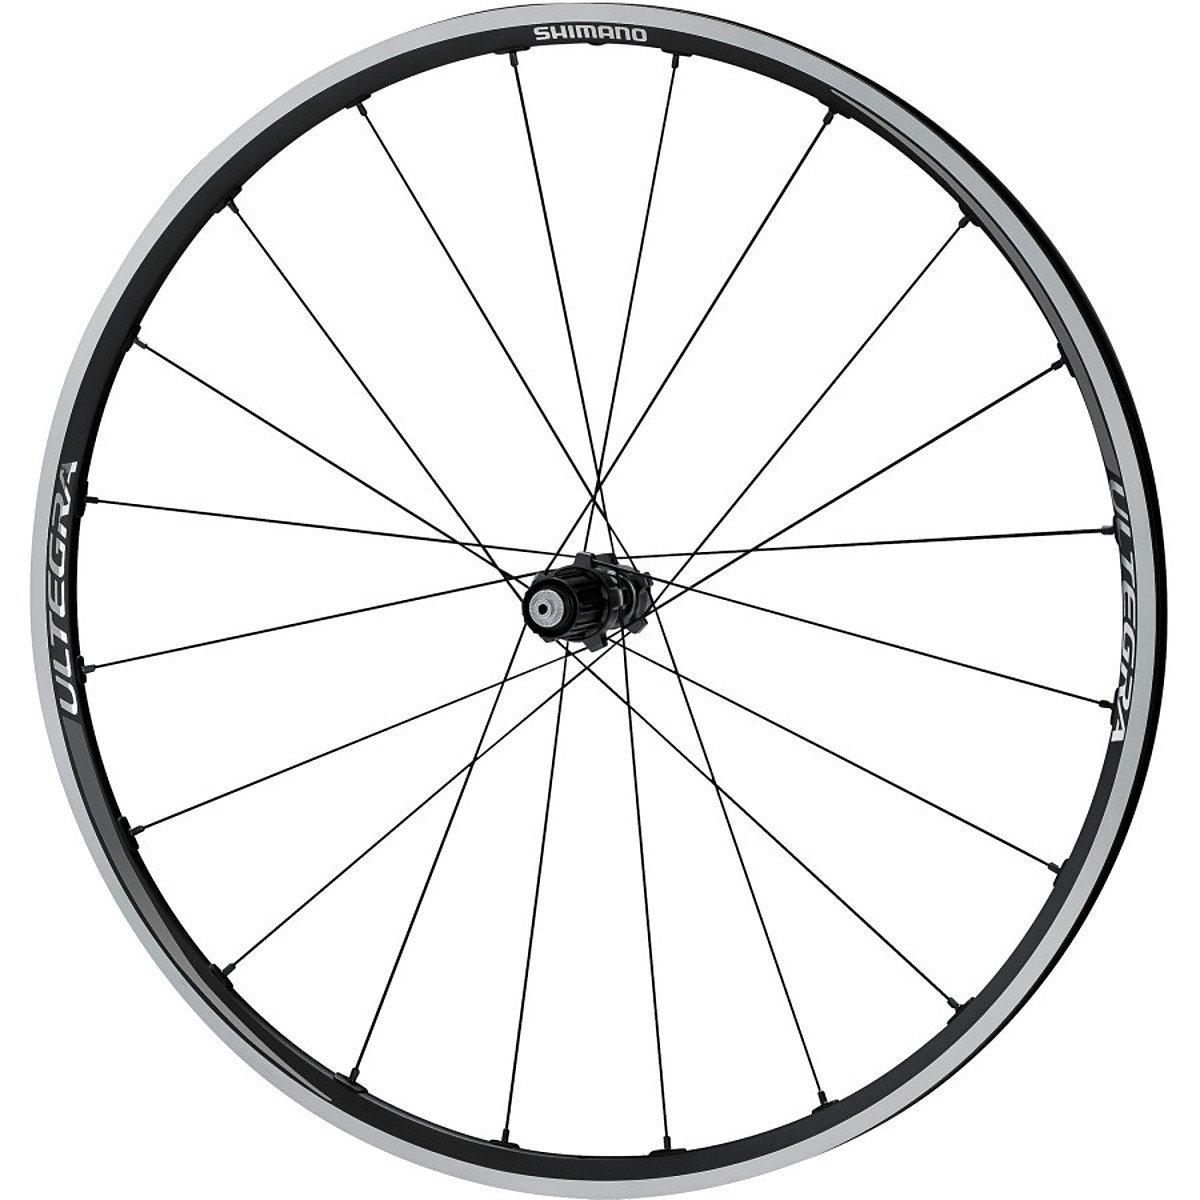 Shimano Ultegra Clincher Tubeless Wheel